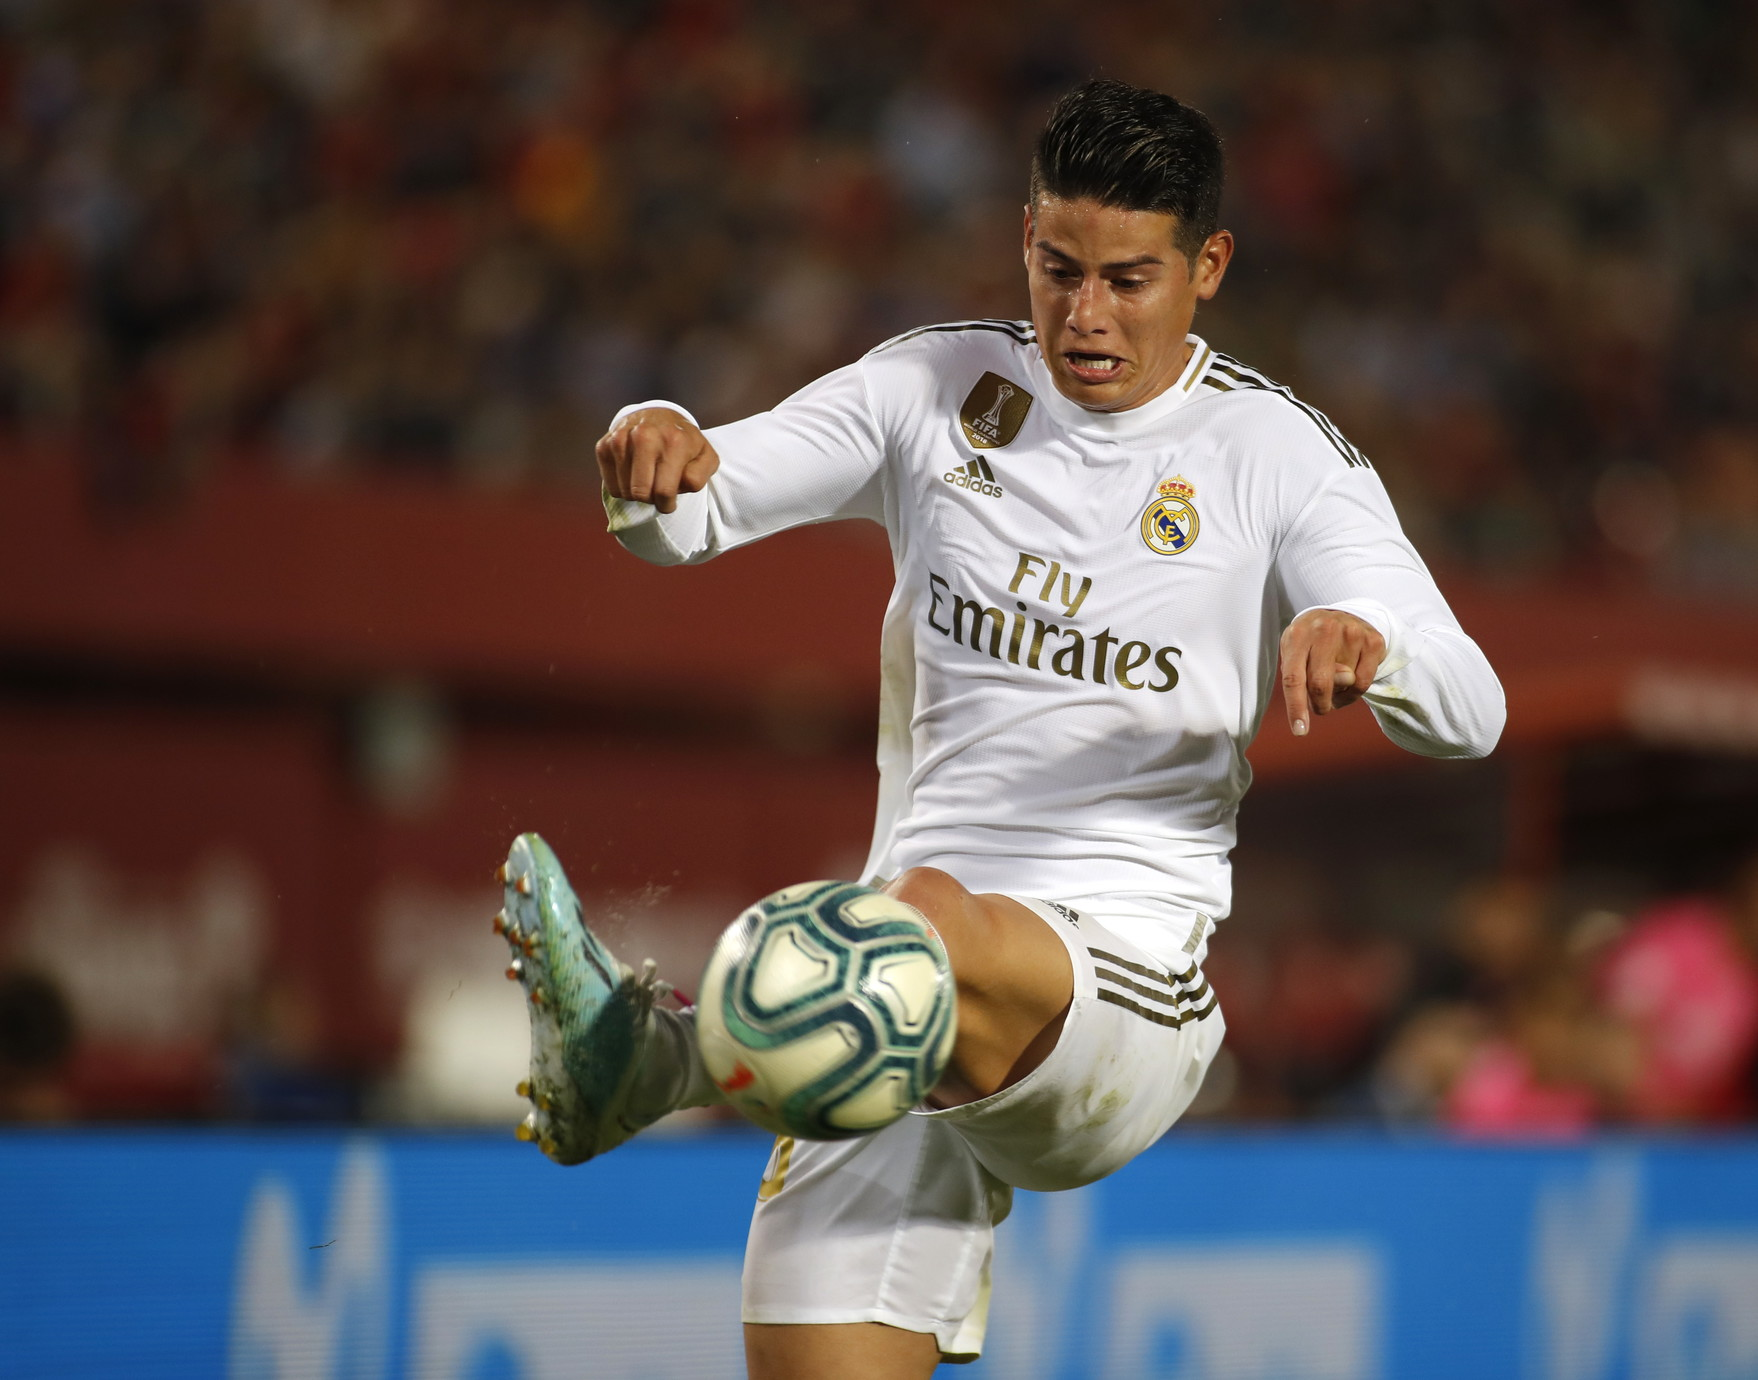 James Rodriguez (Real Madrid)